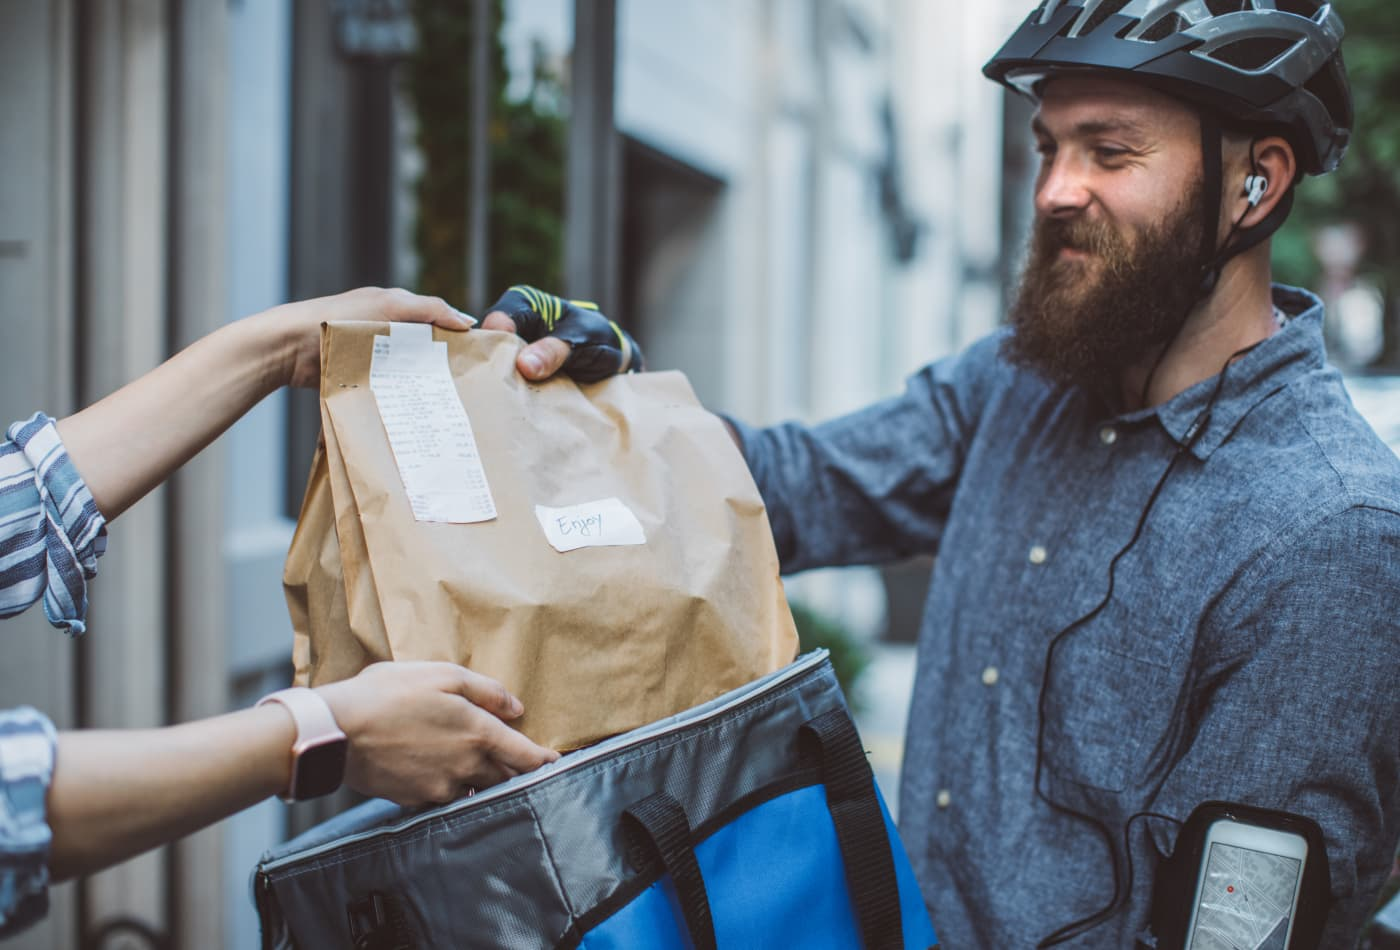 Chase and DoorDash announce partnership to deliver new dining benefits for select cardholders